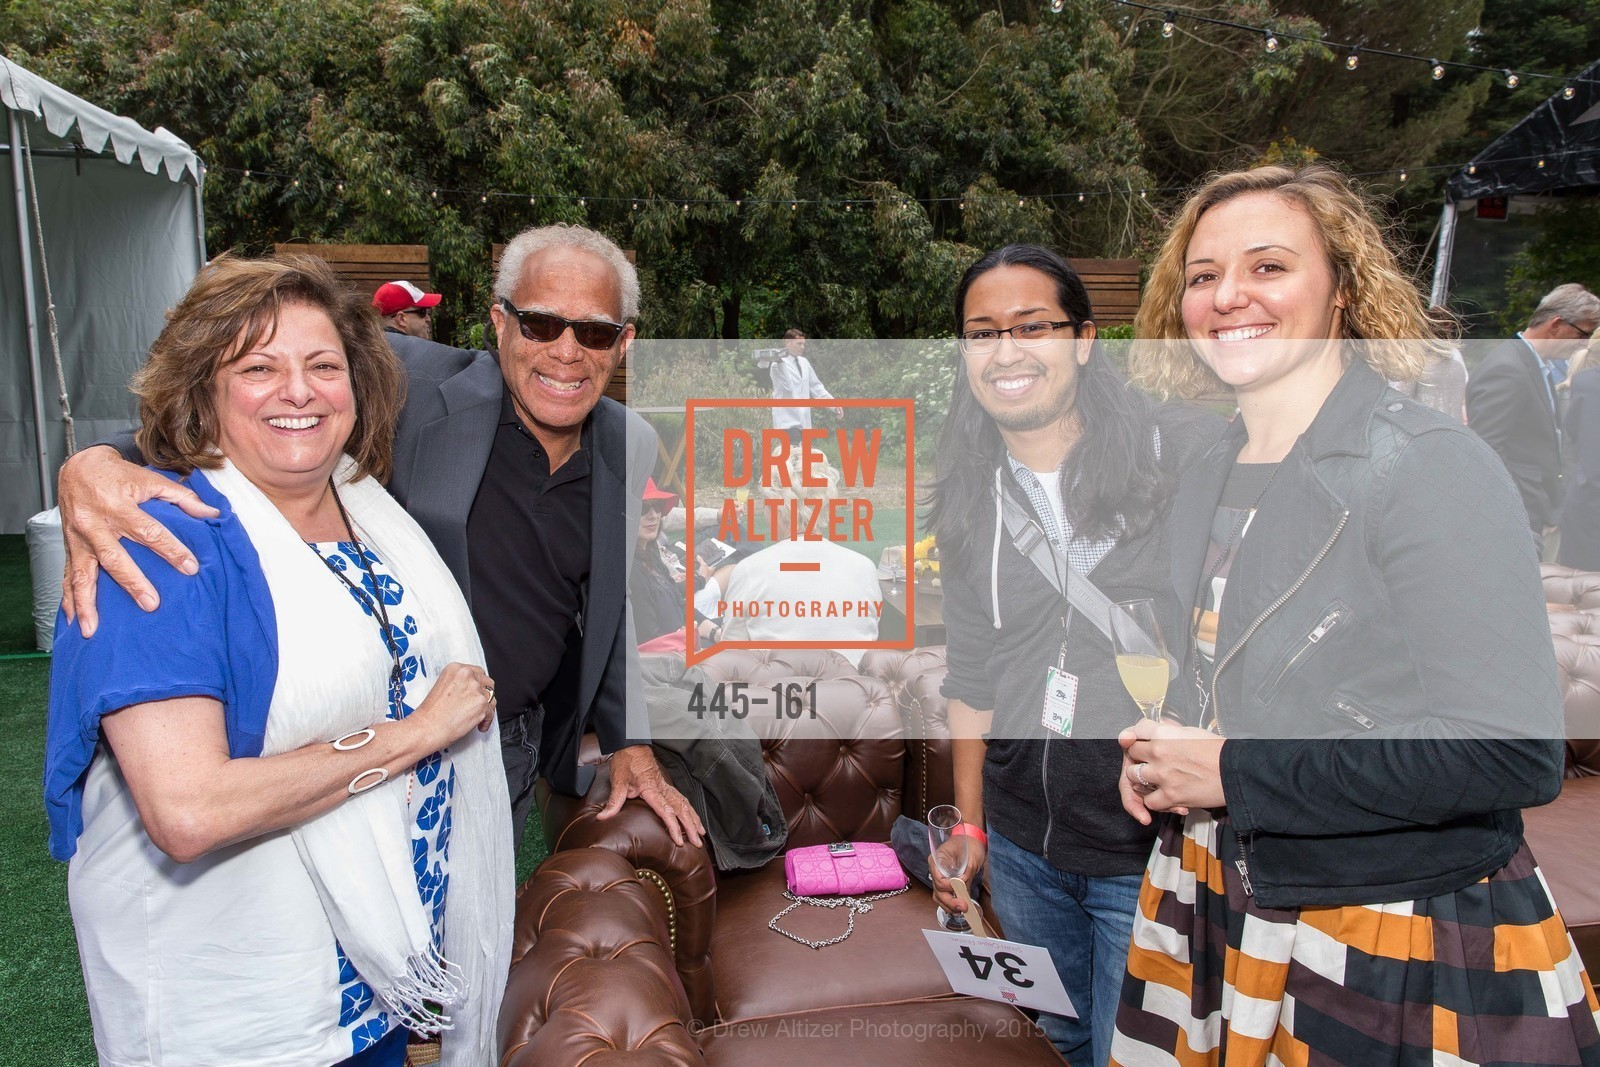 Laura Aldini, Sam Ferguson, Aldo King, Jacqueline Jirka, THE BIG PICNIC Kicking off  2015 Stern Grove Season, Stern Grove. 2750 19th Avenue, June 14th, 2015,Drew Altizer, Drew Altizer Photography, full-service event agency, private events, San Francisco photographer, photographer California